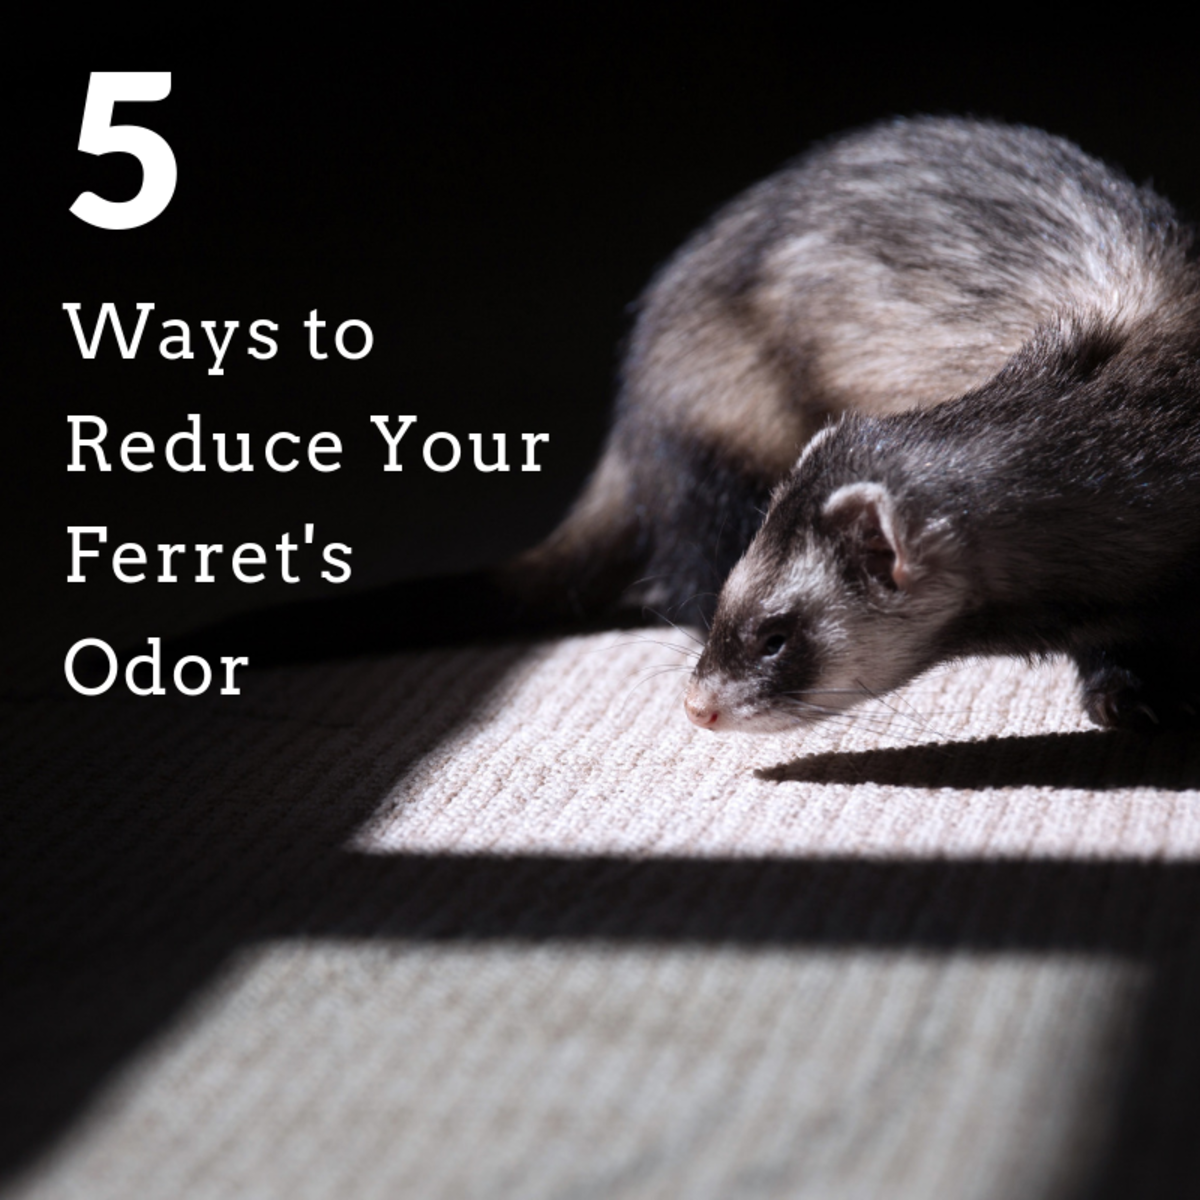 5 Ways to Reduce Ferret Odor